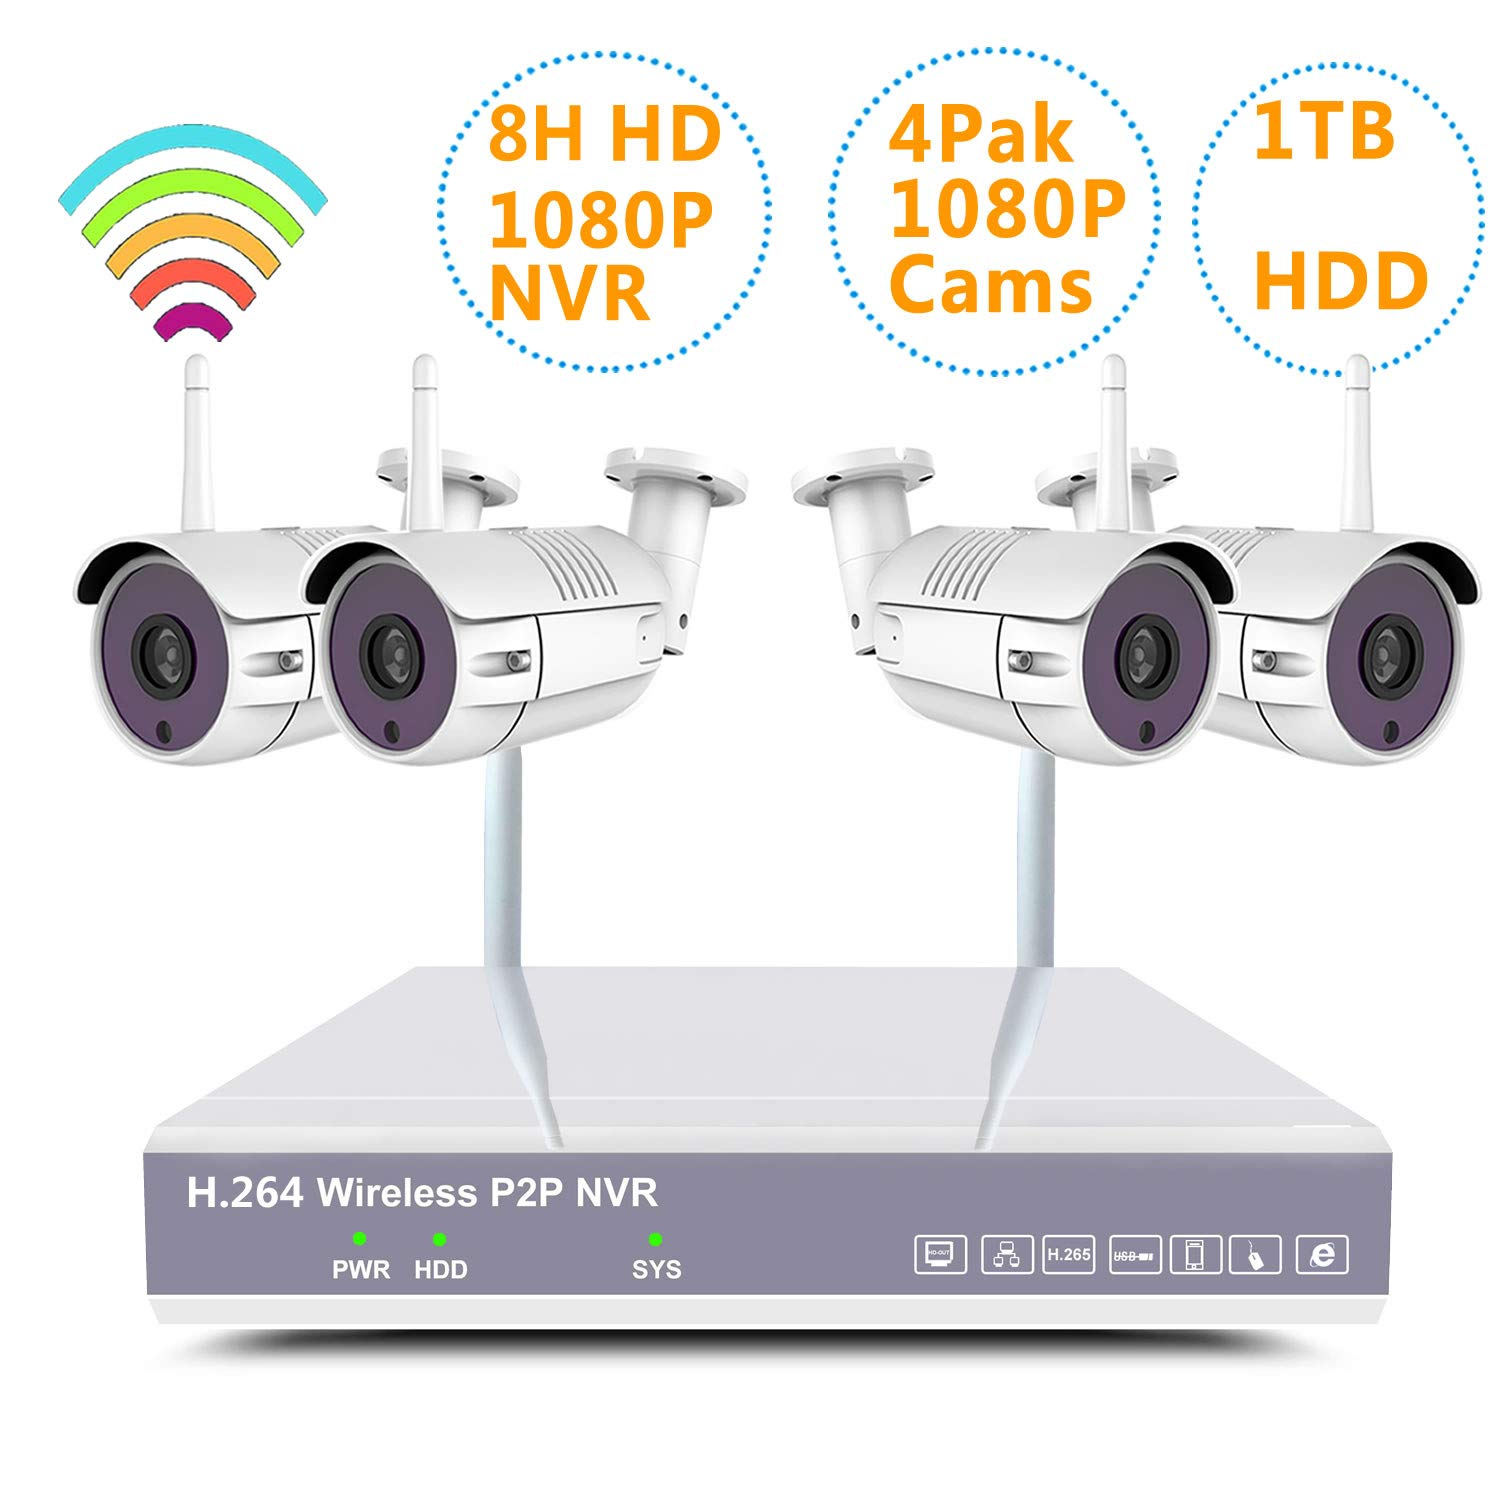 YXMN Home Wireless Security Camera System H.265 NVR kit Wireless Surveillance 4pcs Smart WiFi CCTV IP 1080P 2MP Night Vision Outdoor Video View Auto Pair 8ch NVR 4pcs1080Pcamera 1TBhdd